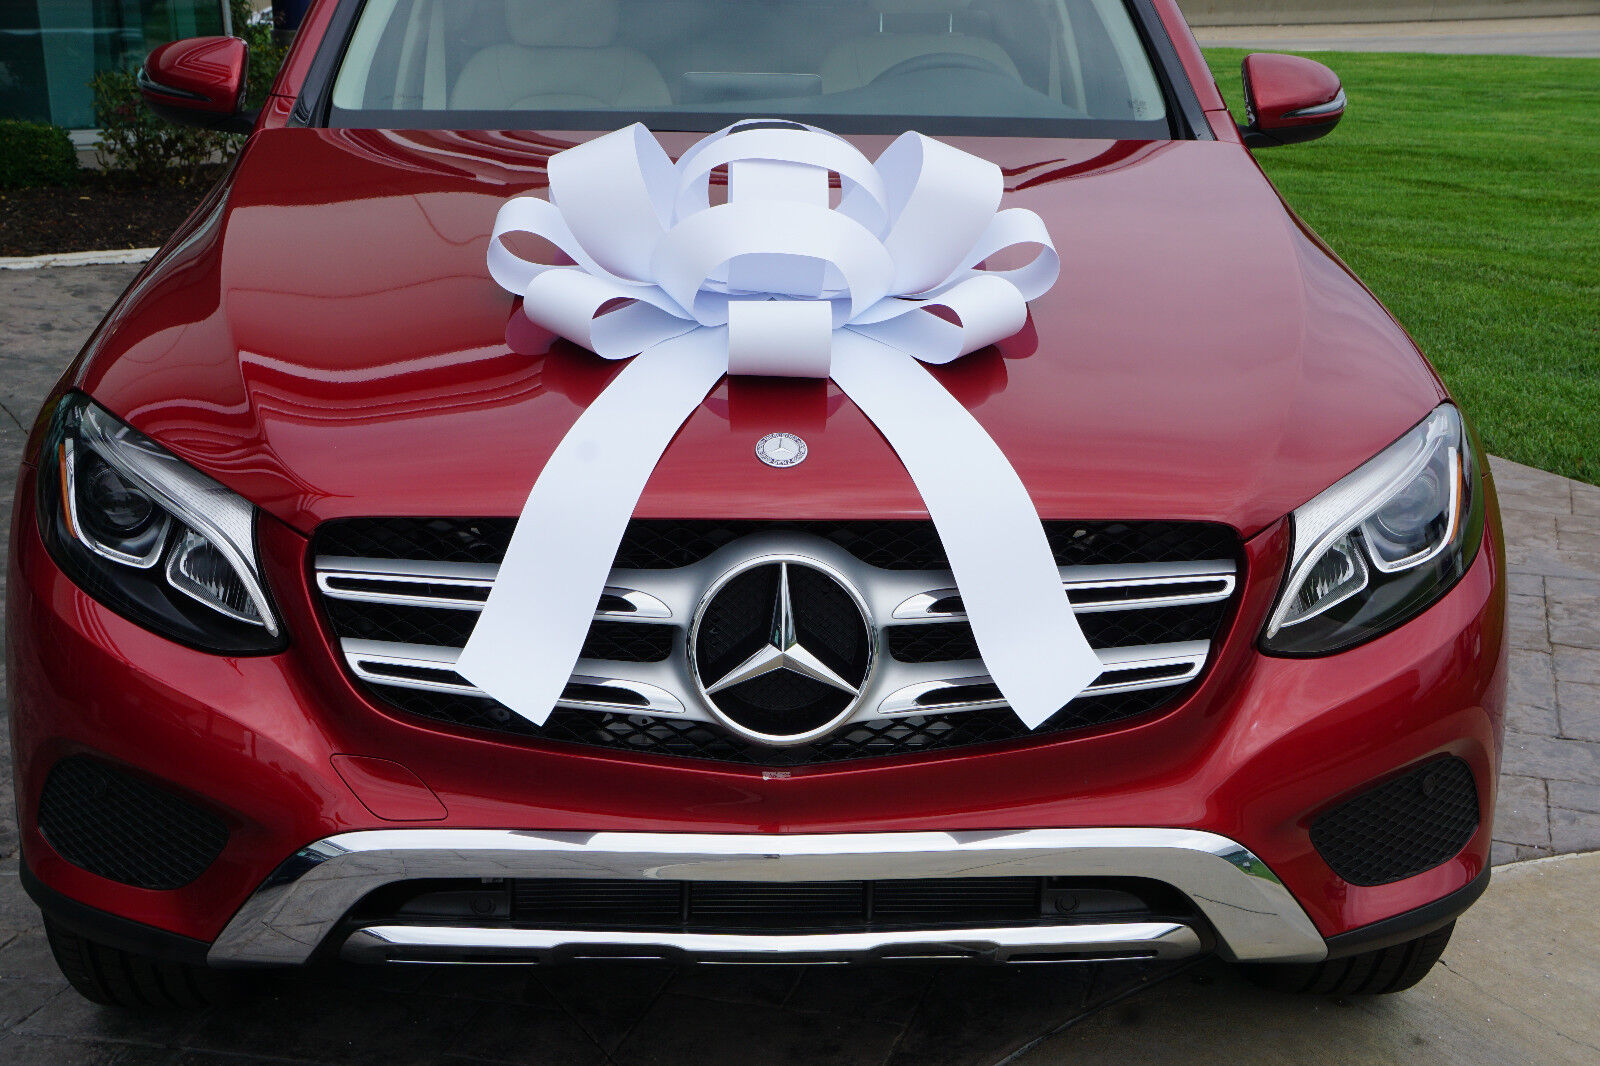 Bows for Cars Huge Car Bow Gifts for Graduates Big Gift Bow 2018 OR 2019